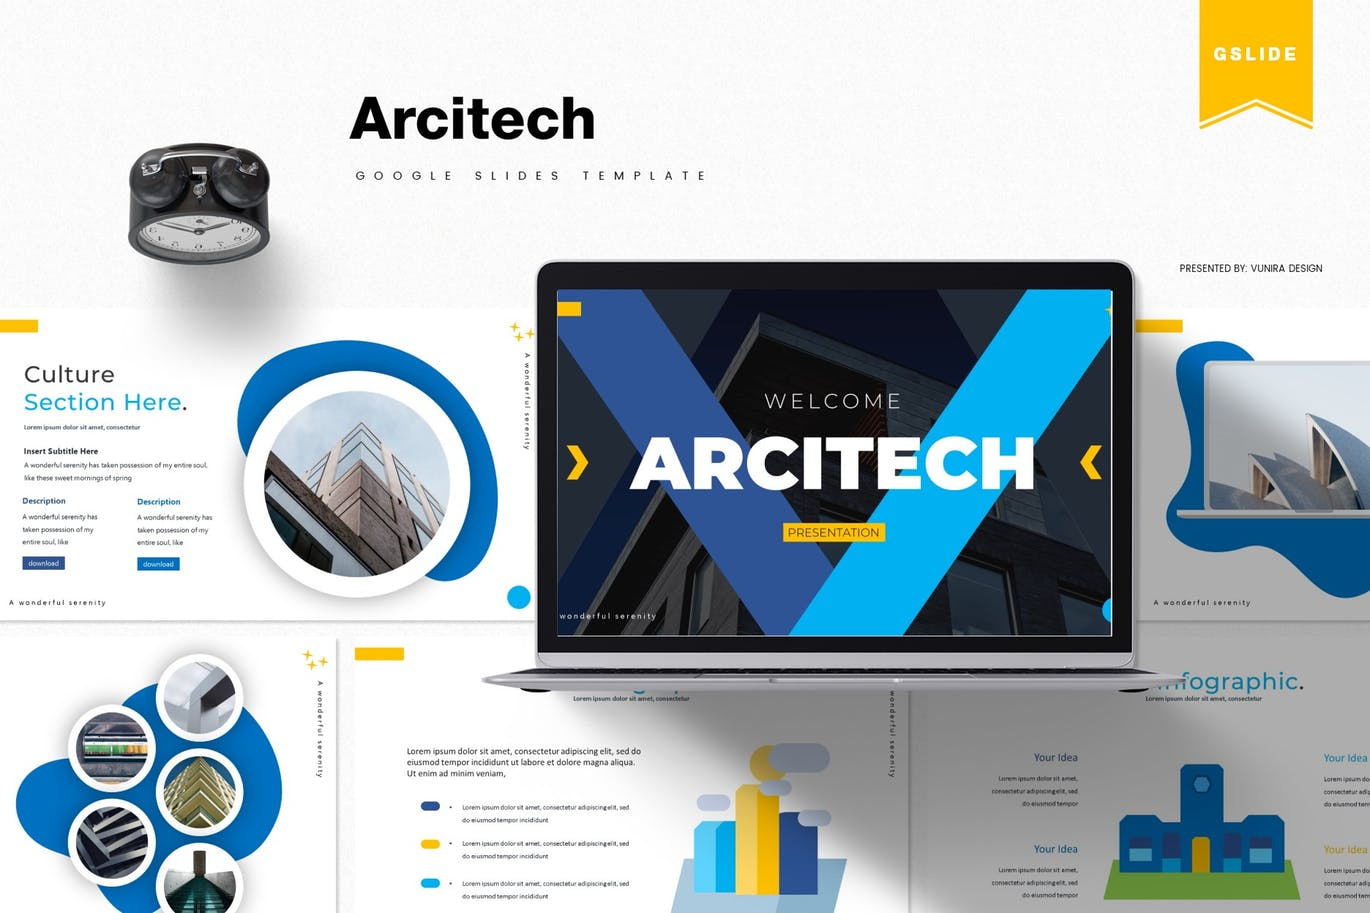 Arcitech - Google Slides Template